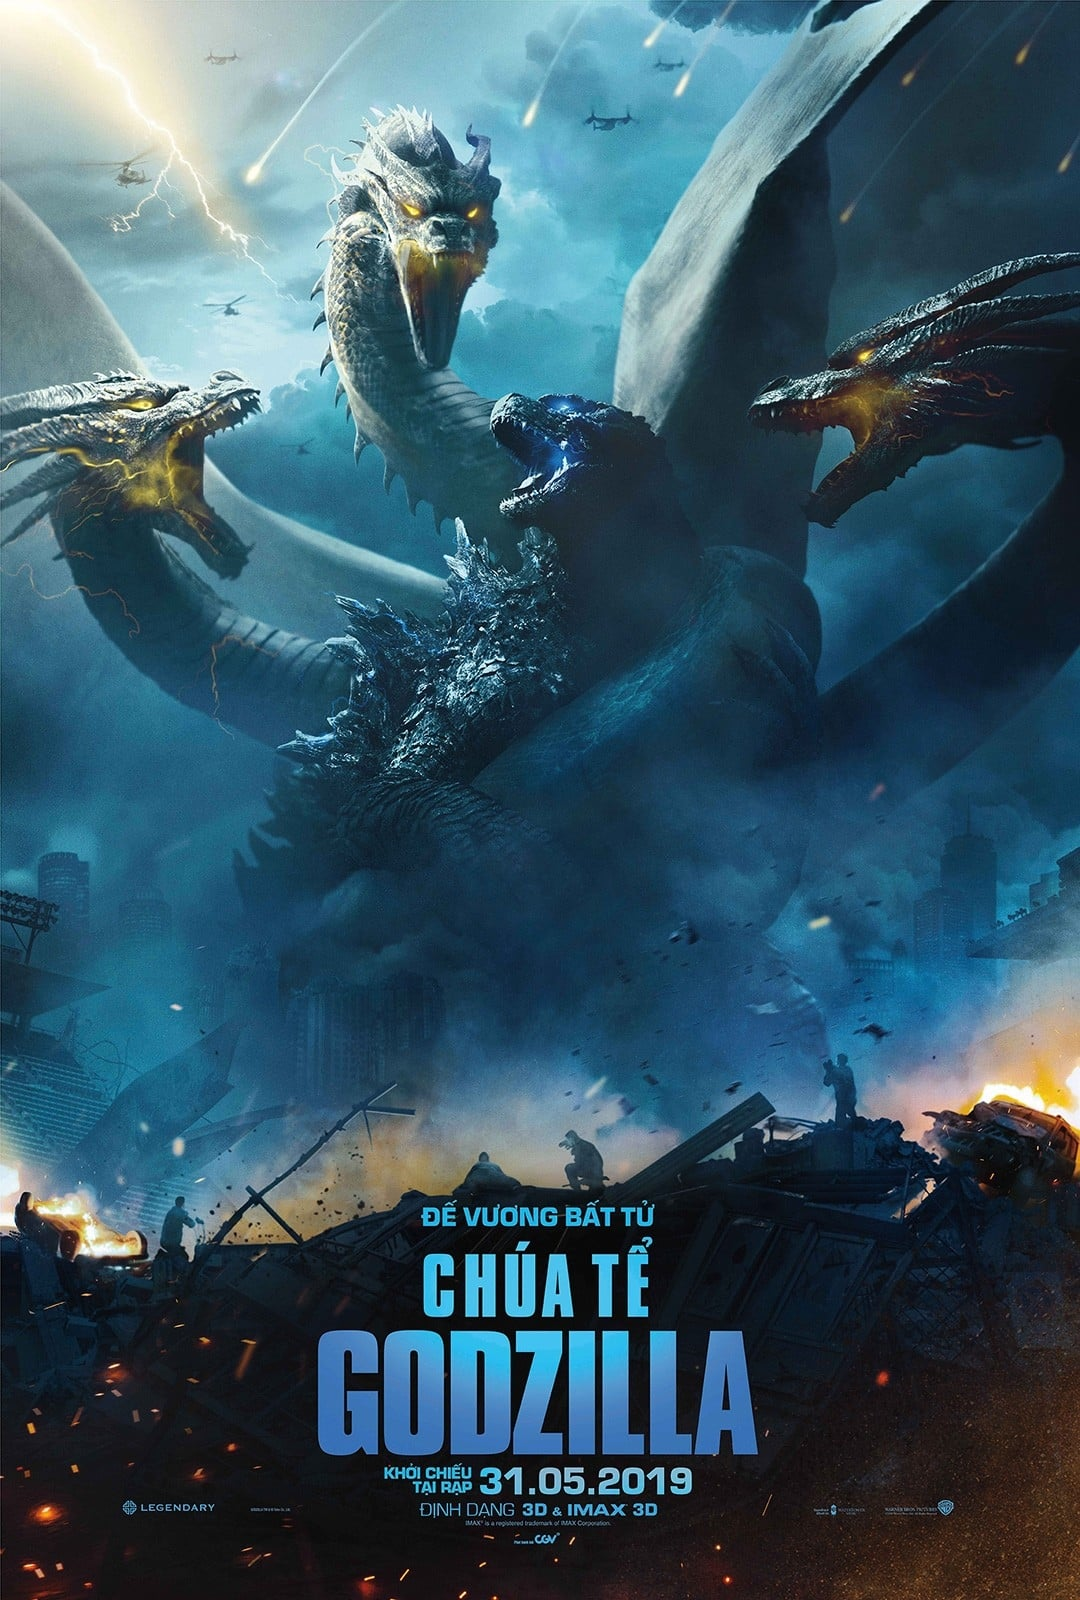 176 - Godzilla - King of the Monsters - Chúa Tể Godzilla 2019